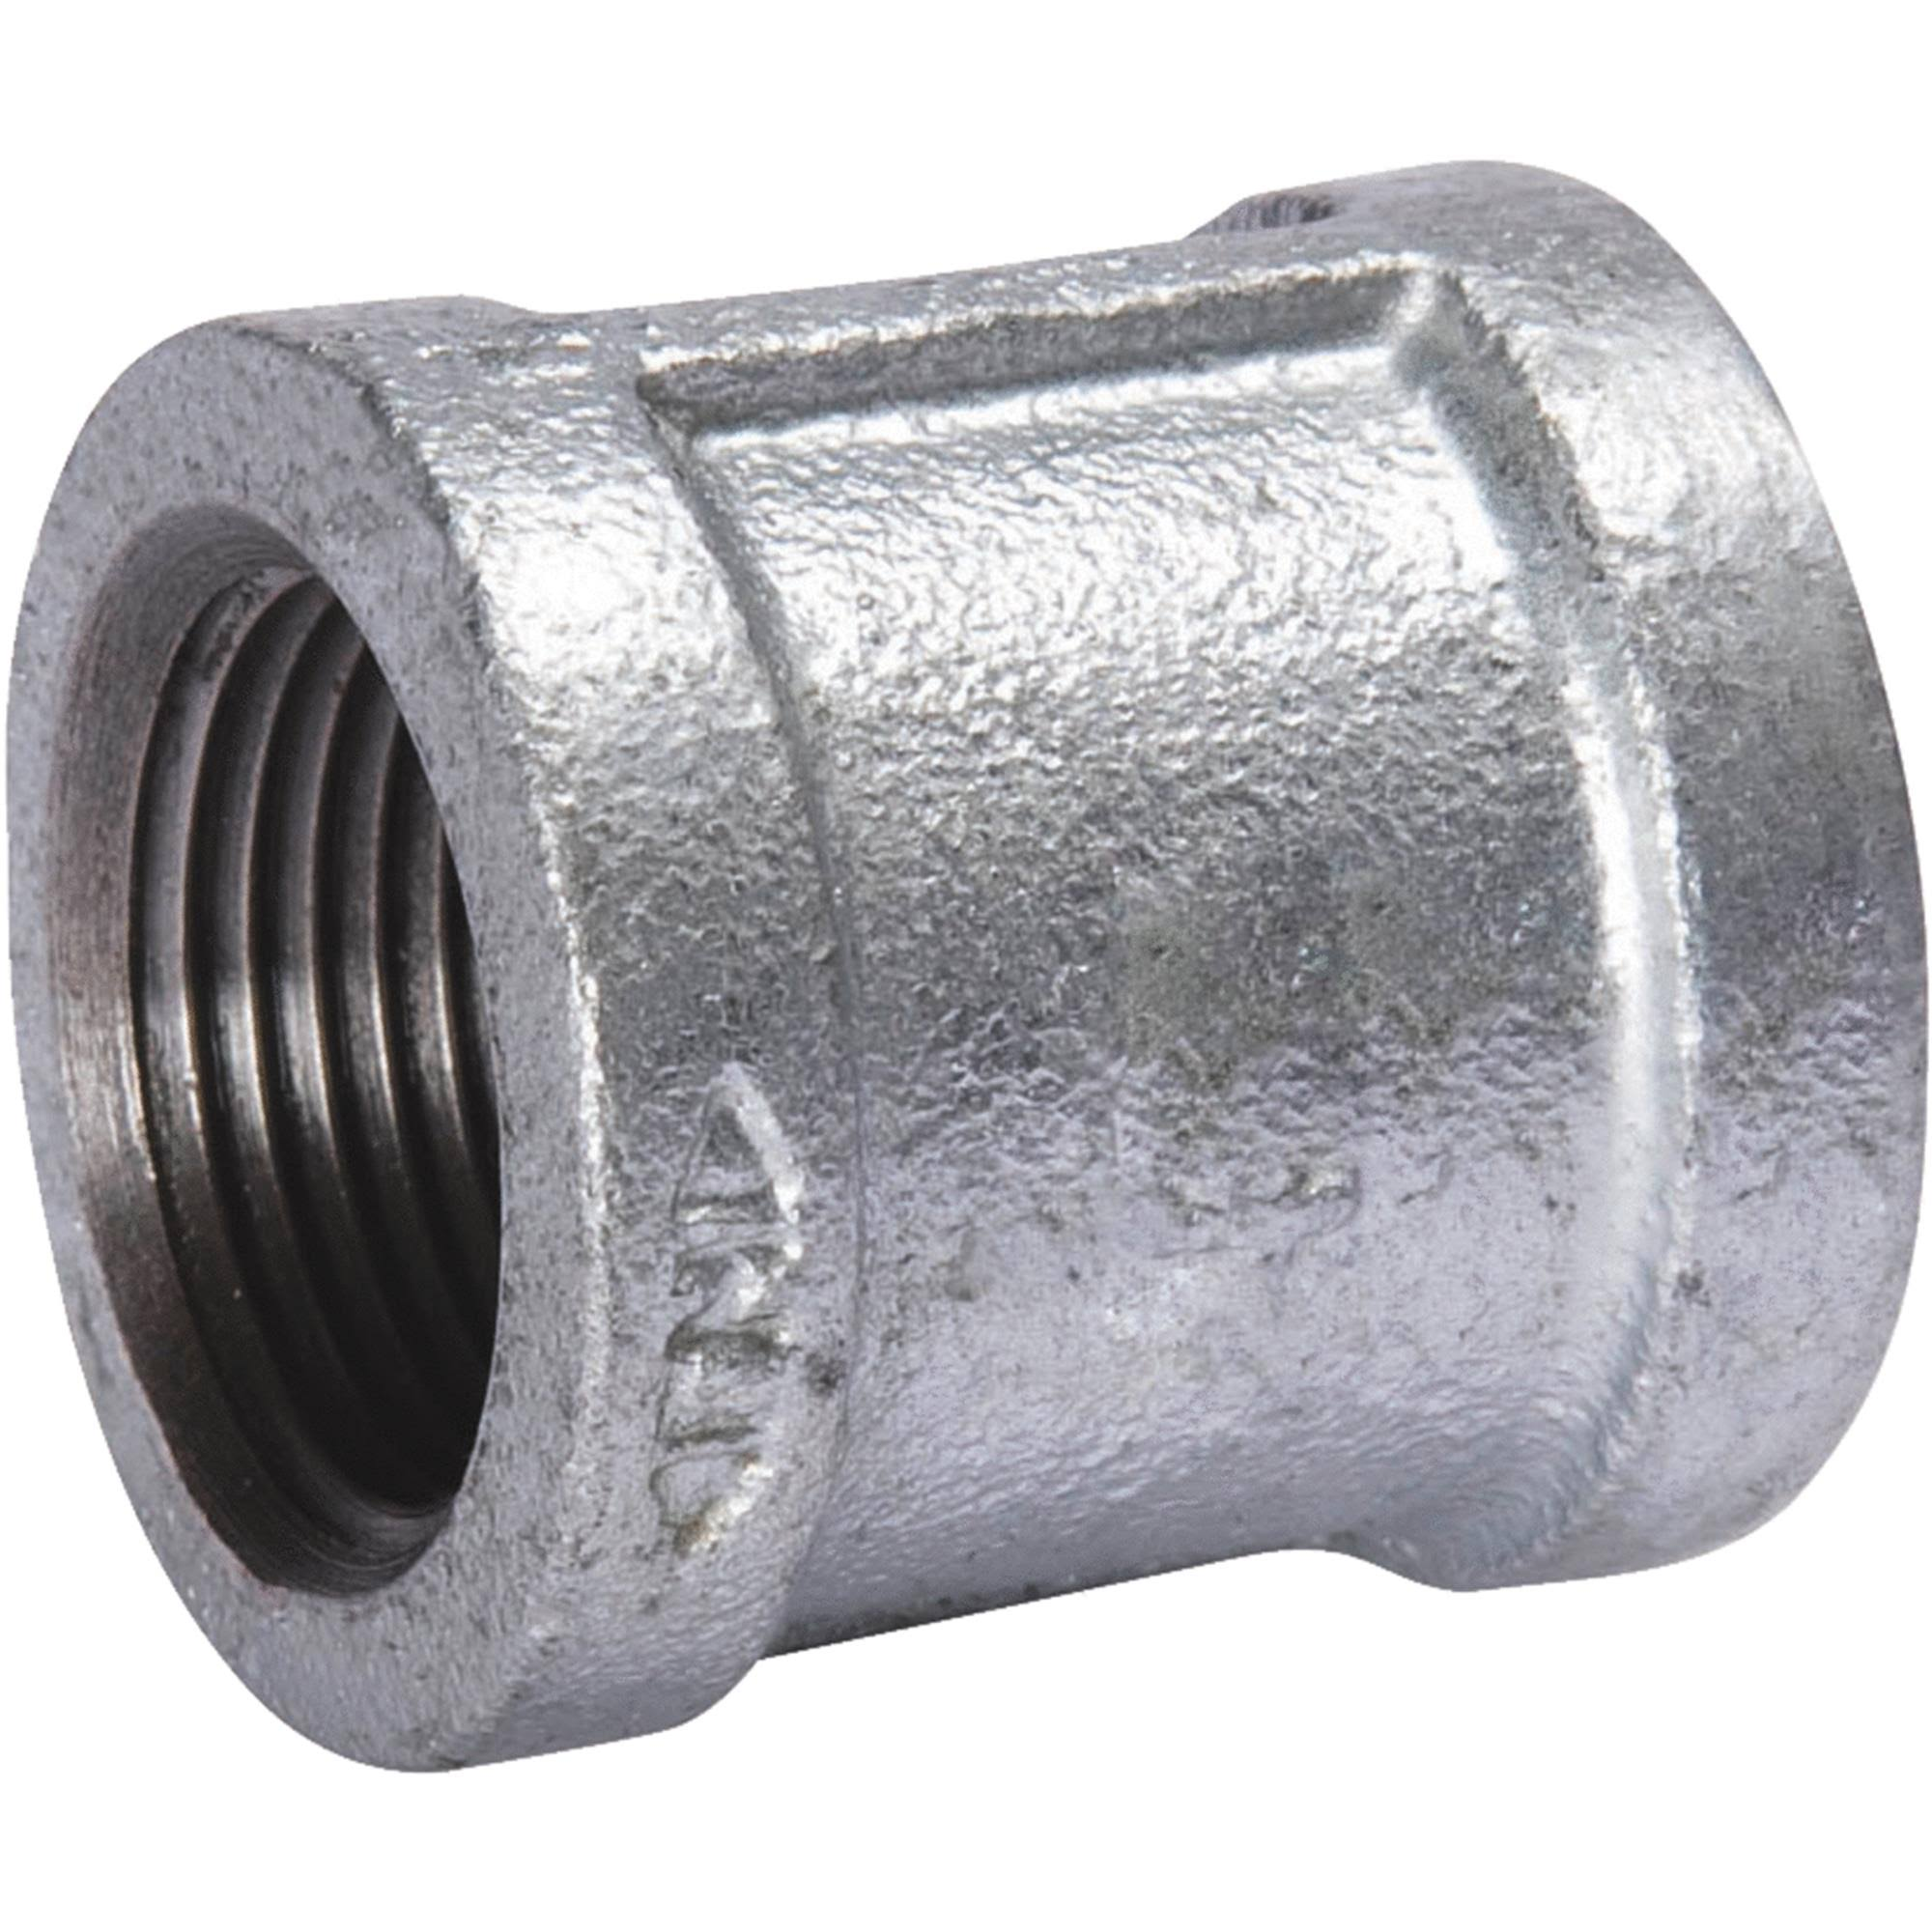 B and K Malleable Galvanized Iron Coupling - 1 1/4""